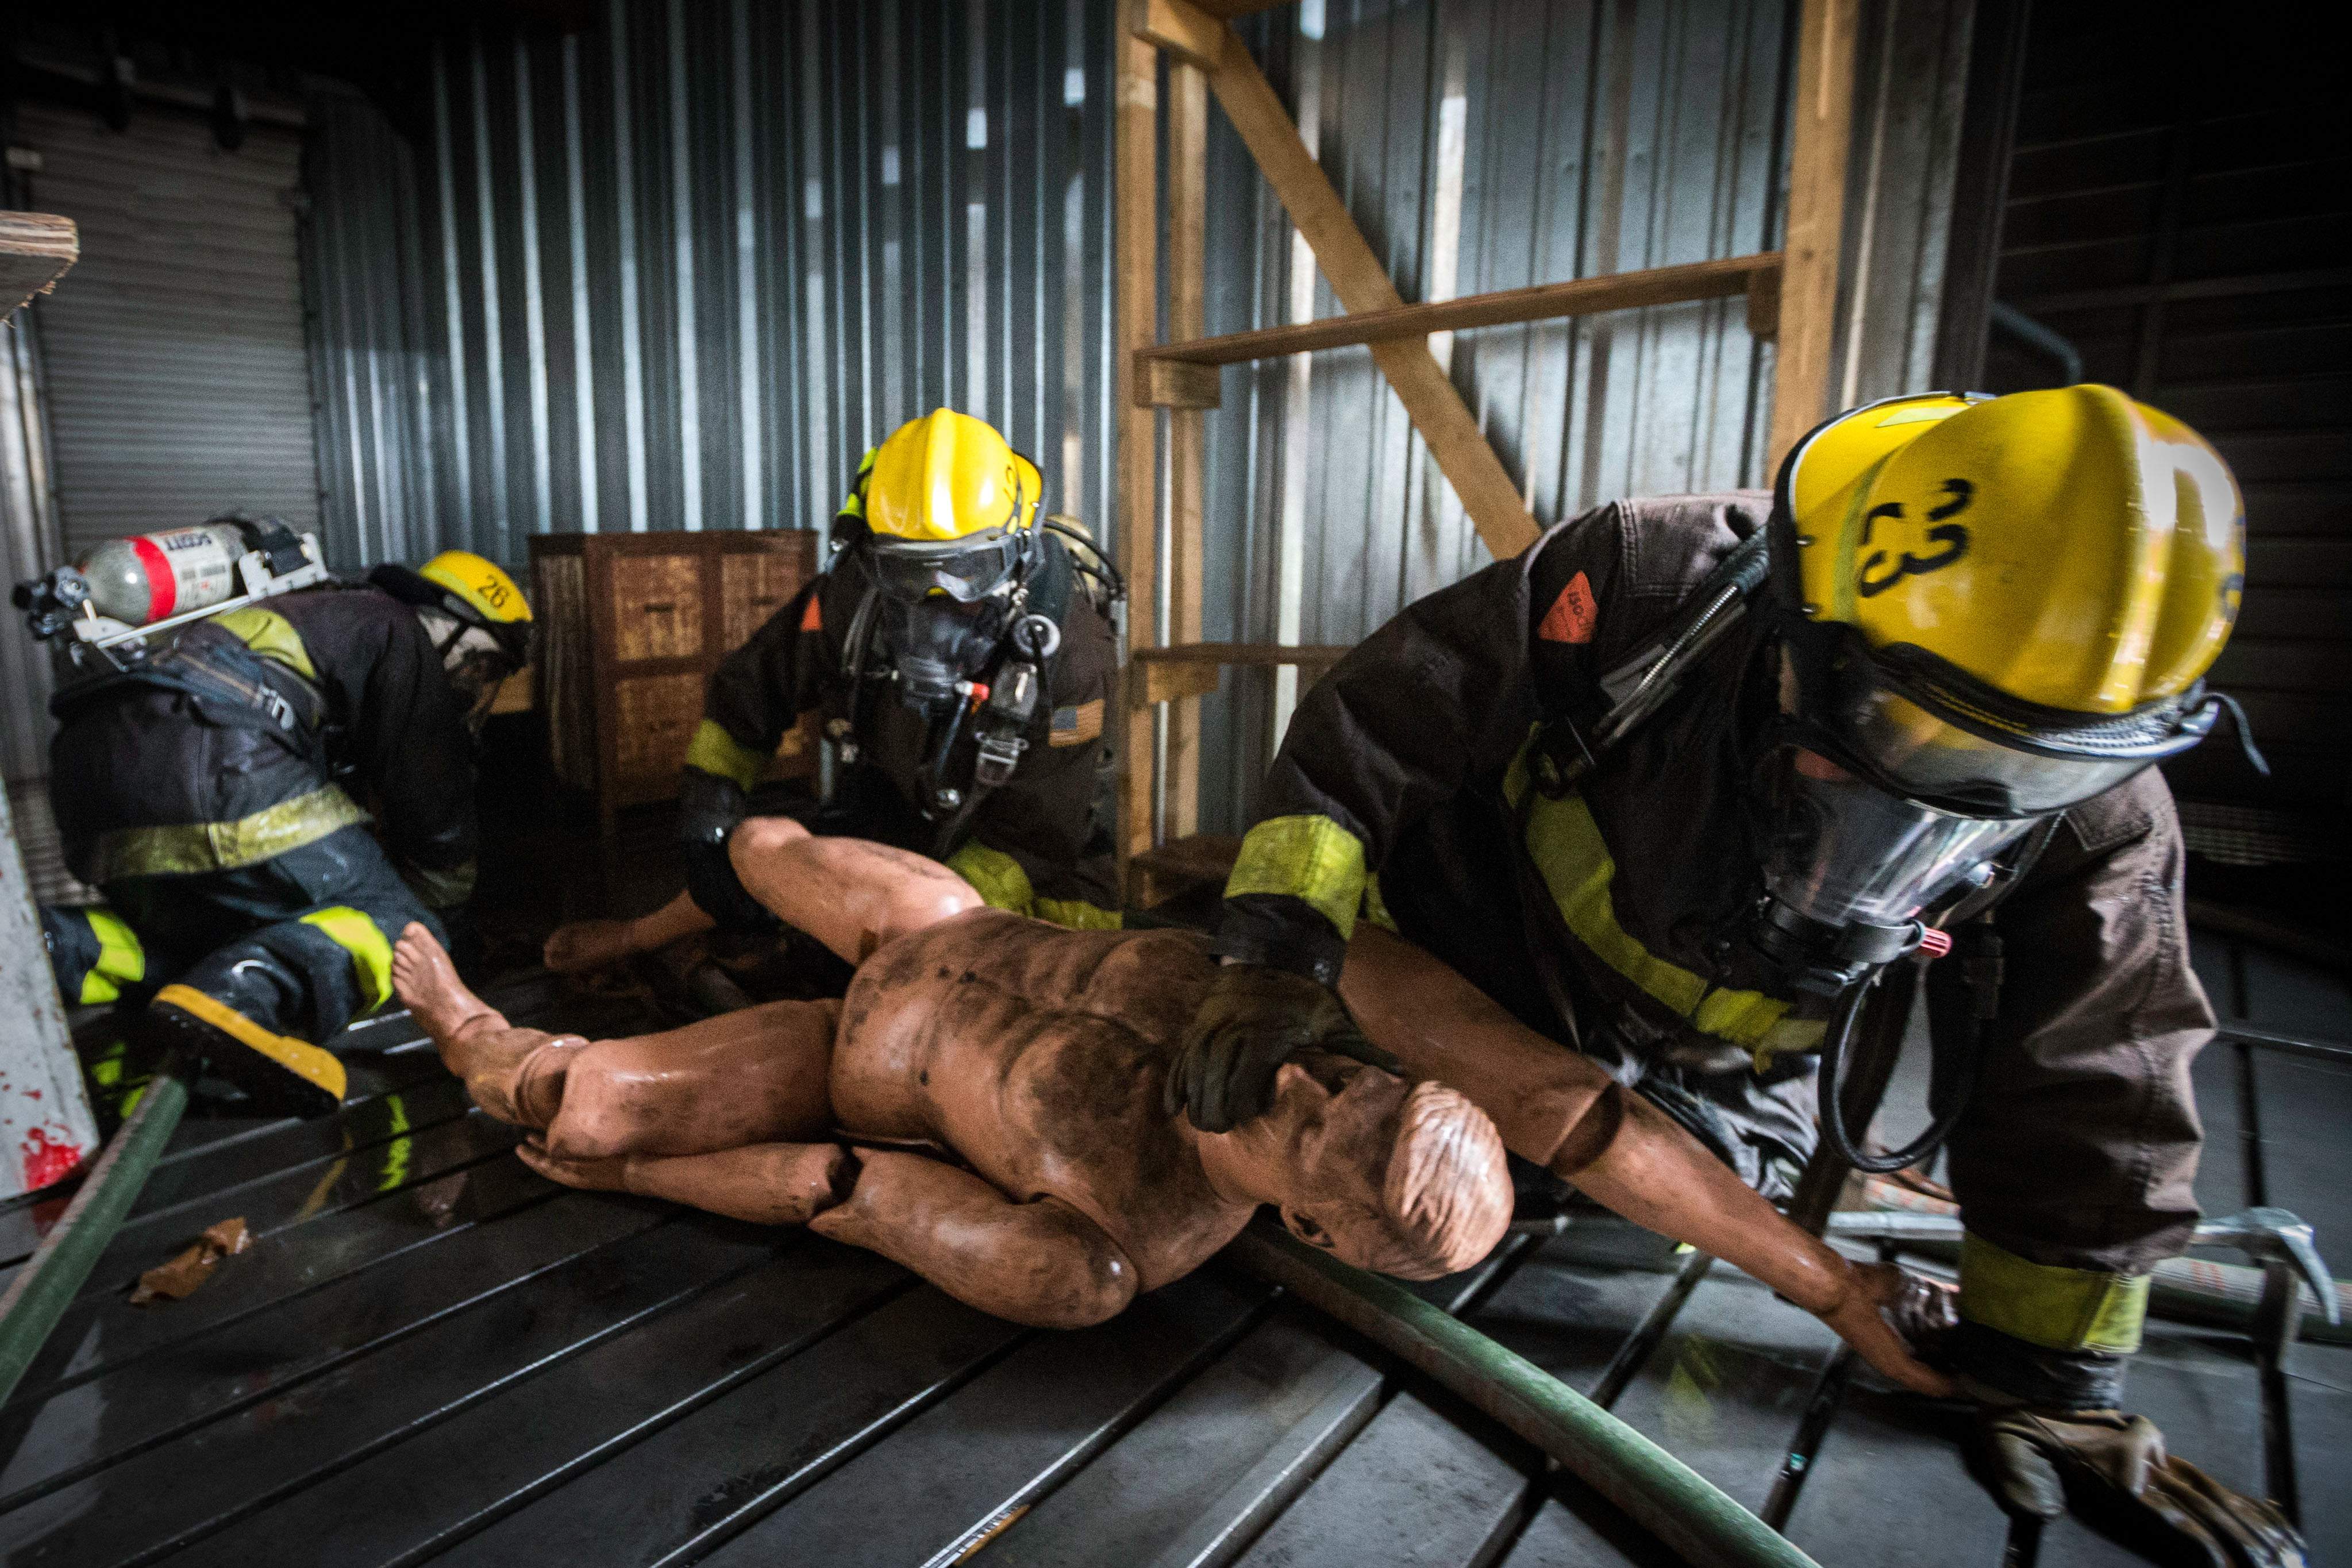 Fire cadets practice rescuing a victim using the head tilt chin lift method during a search and rescue drill at the live fire training that cumulated the 18 weeks of preparation for the 29 fire cadets of City College's Class 15 Fire Fighter One Academy at South San Francisco Fire Department Station 61 on Saturday, May 16, 2015. (Photo by Nathaniel Y. Downes/The Guardsman)